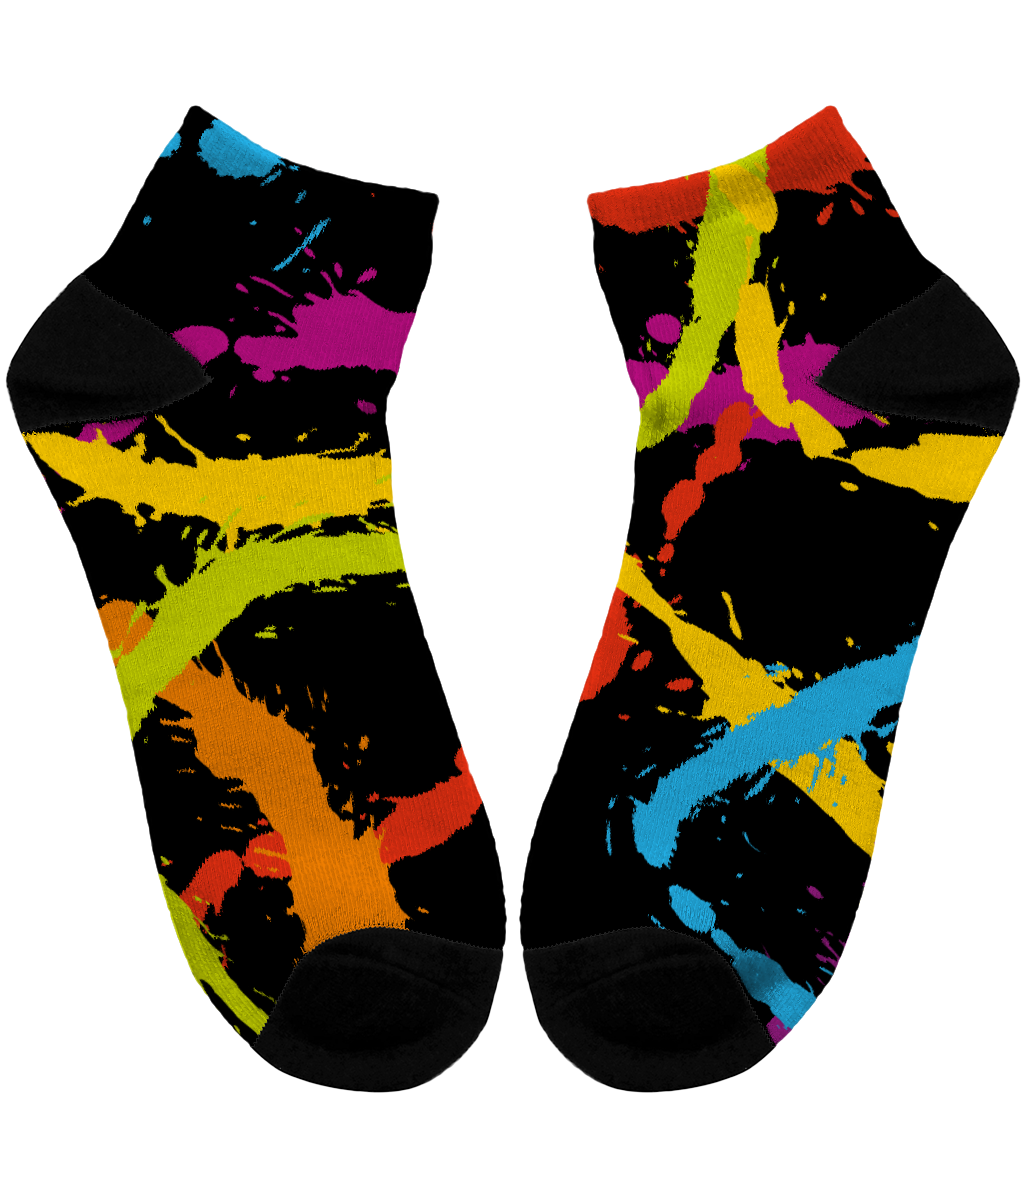 Splattered Rainbow [BLACK] - Unisex Sublimation Tube Socks by Daniel Bevis